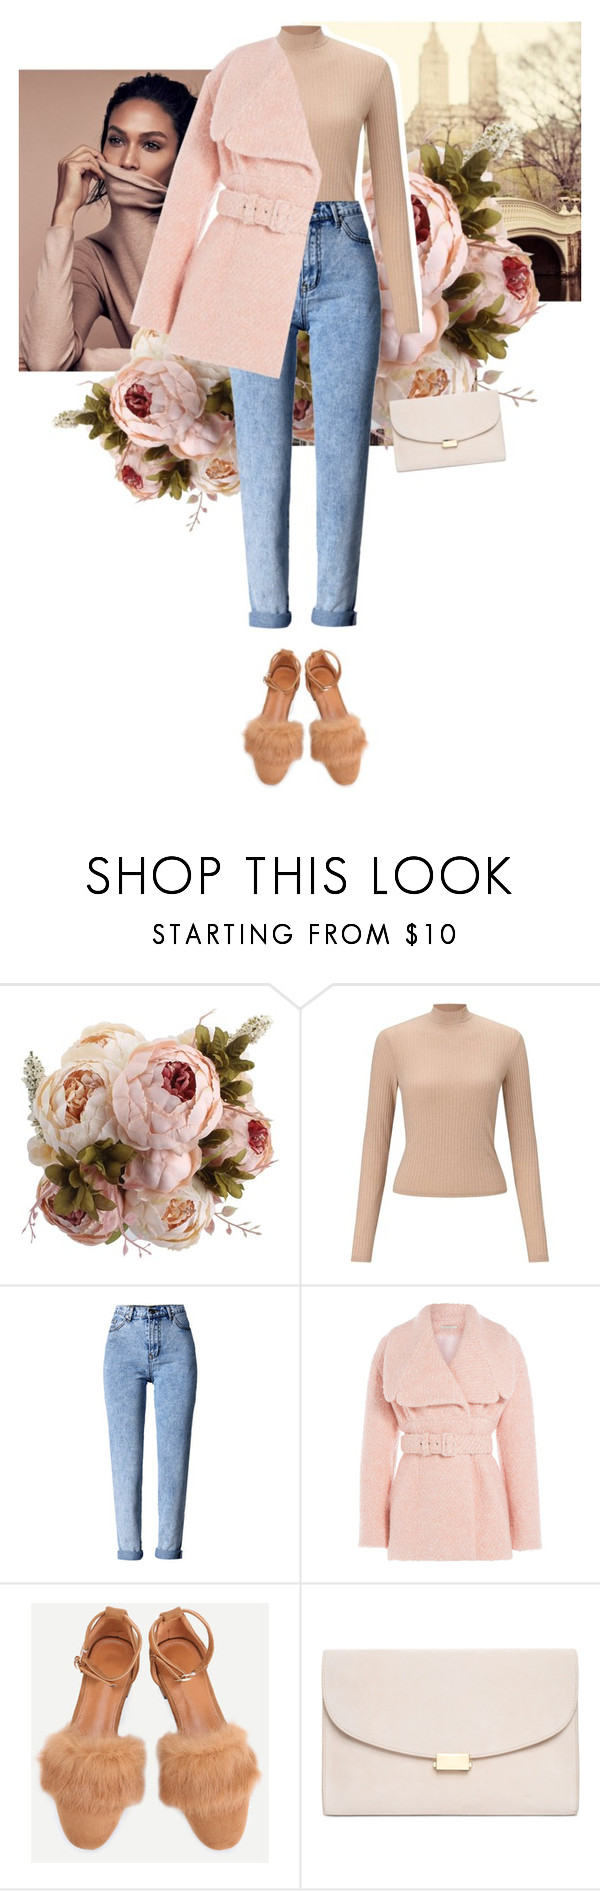 """""""dreaming"""" by faye-valentine ❤ liked on Polyvore featuring Miss Selfridge, WithChic, Emilia Wickstead and Mansur Gavriel"""